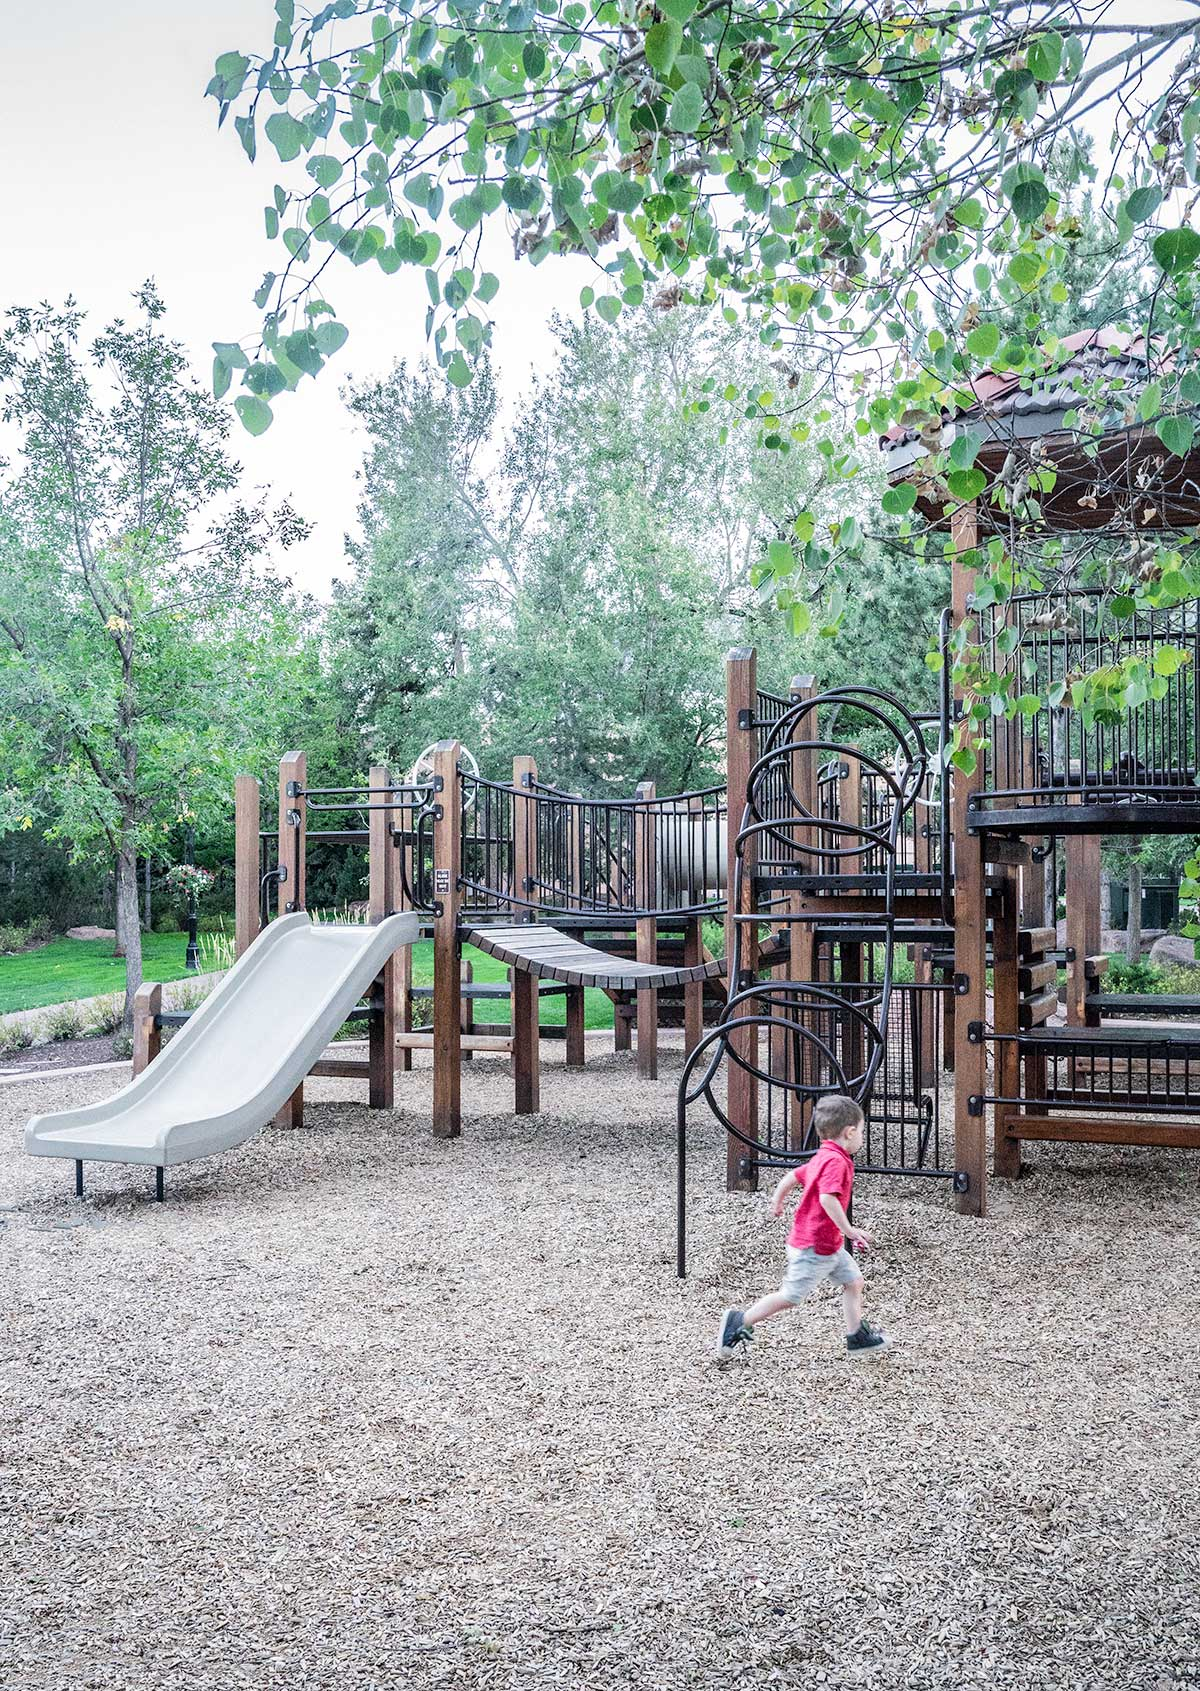 Playground-Broadmoor-Colorado-Springs